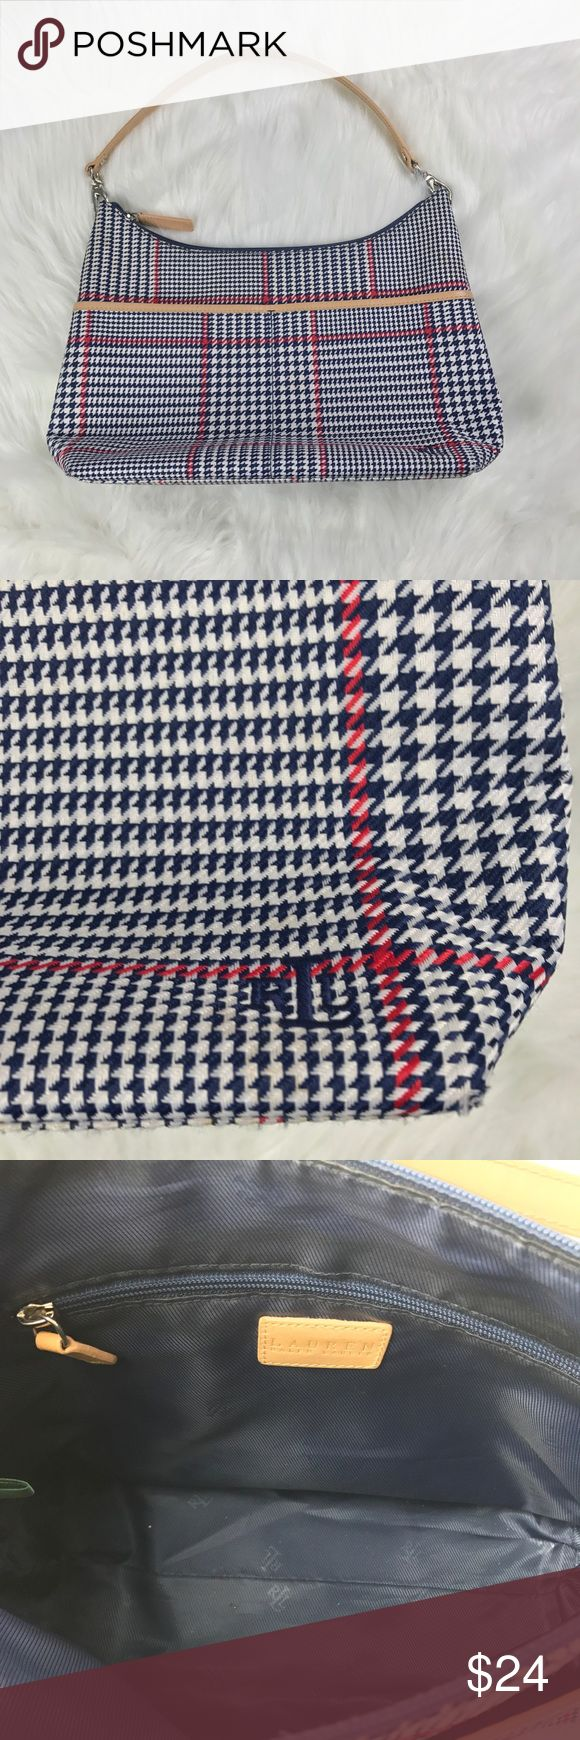 """Ralph Lauren Red White Blue Shoulder Bag Lauren Ralph Lauren Women's Red White Blue Shoulder Bag Houndstooth Tan Trim Purse has two outside pockets, inside zip compartment. Purse is pre owned and in excellent condition:  no rips, tears or stains Size: H 10"""" x L 13"""" Lauren Ralph Lauren Bags Shoulder Bags"""